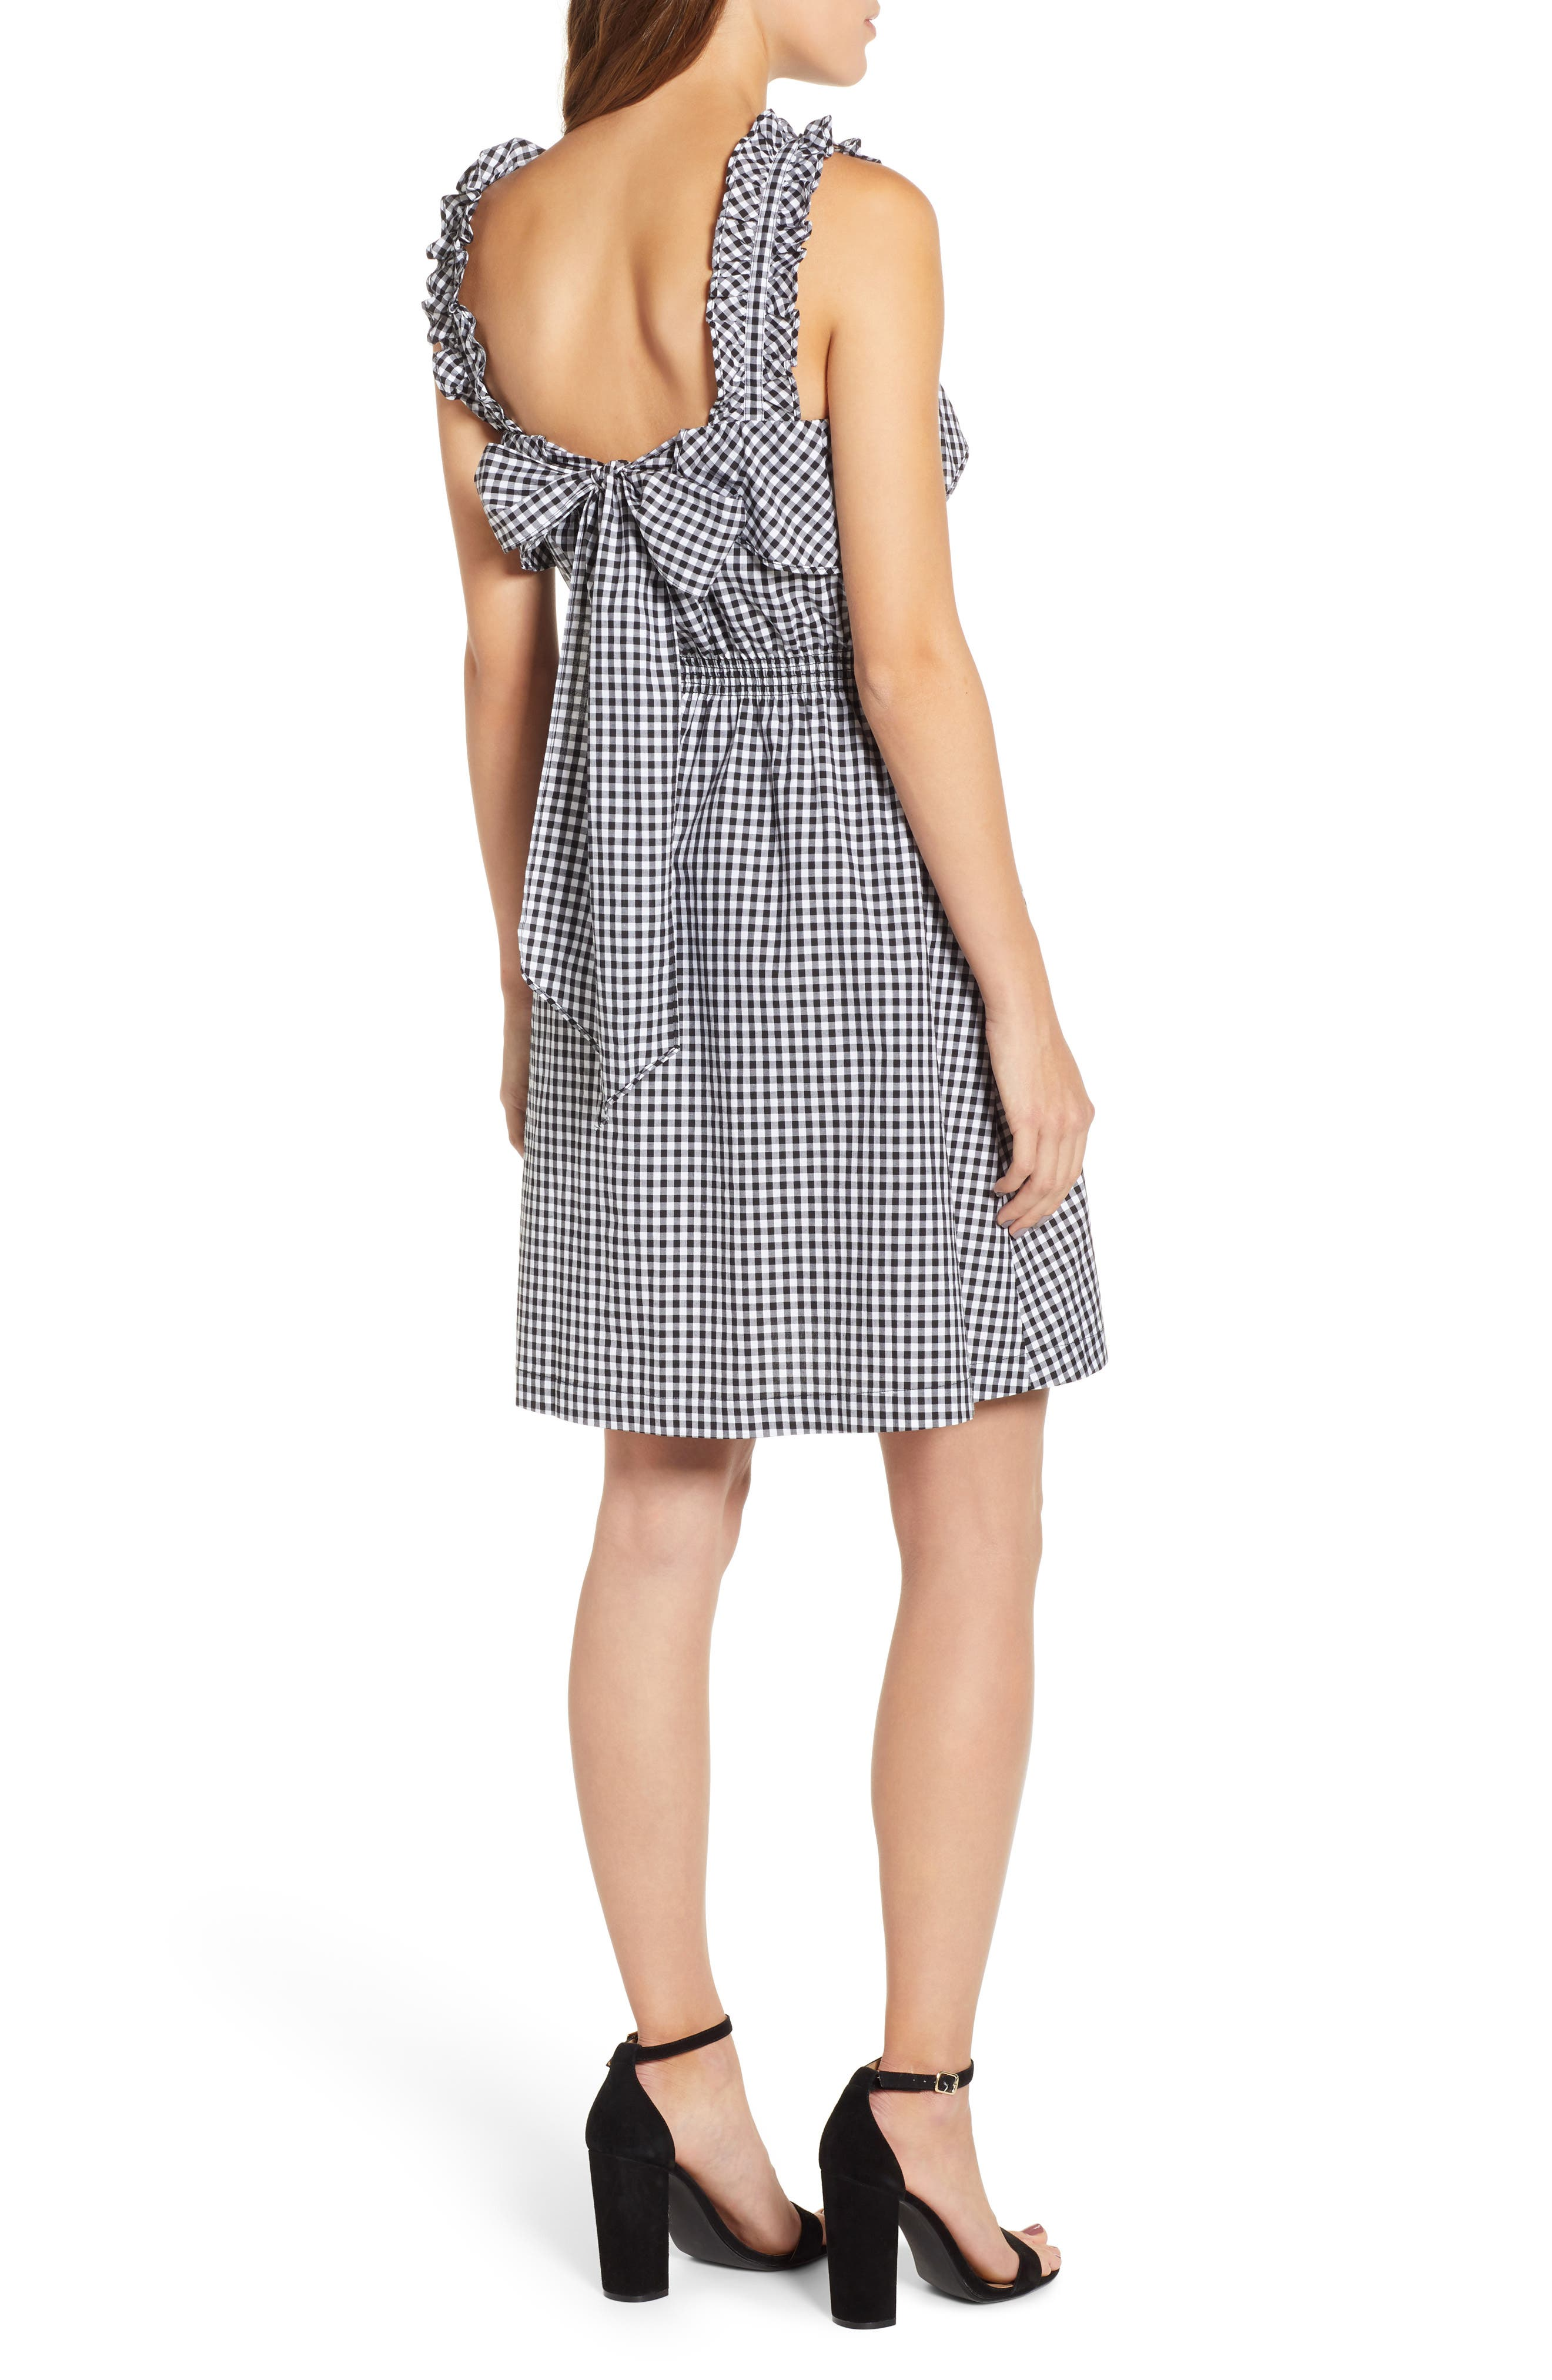 7 FOR ALL MANKIND<SUP>®</SUP>, Gingham Ruffle Dress, Alternate thumbnail 2, color, 005